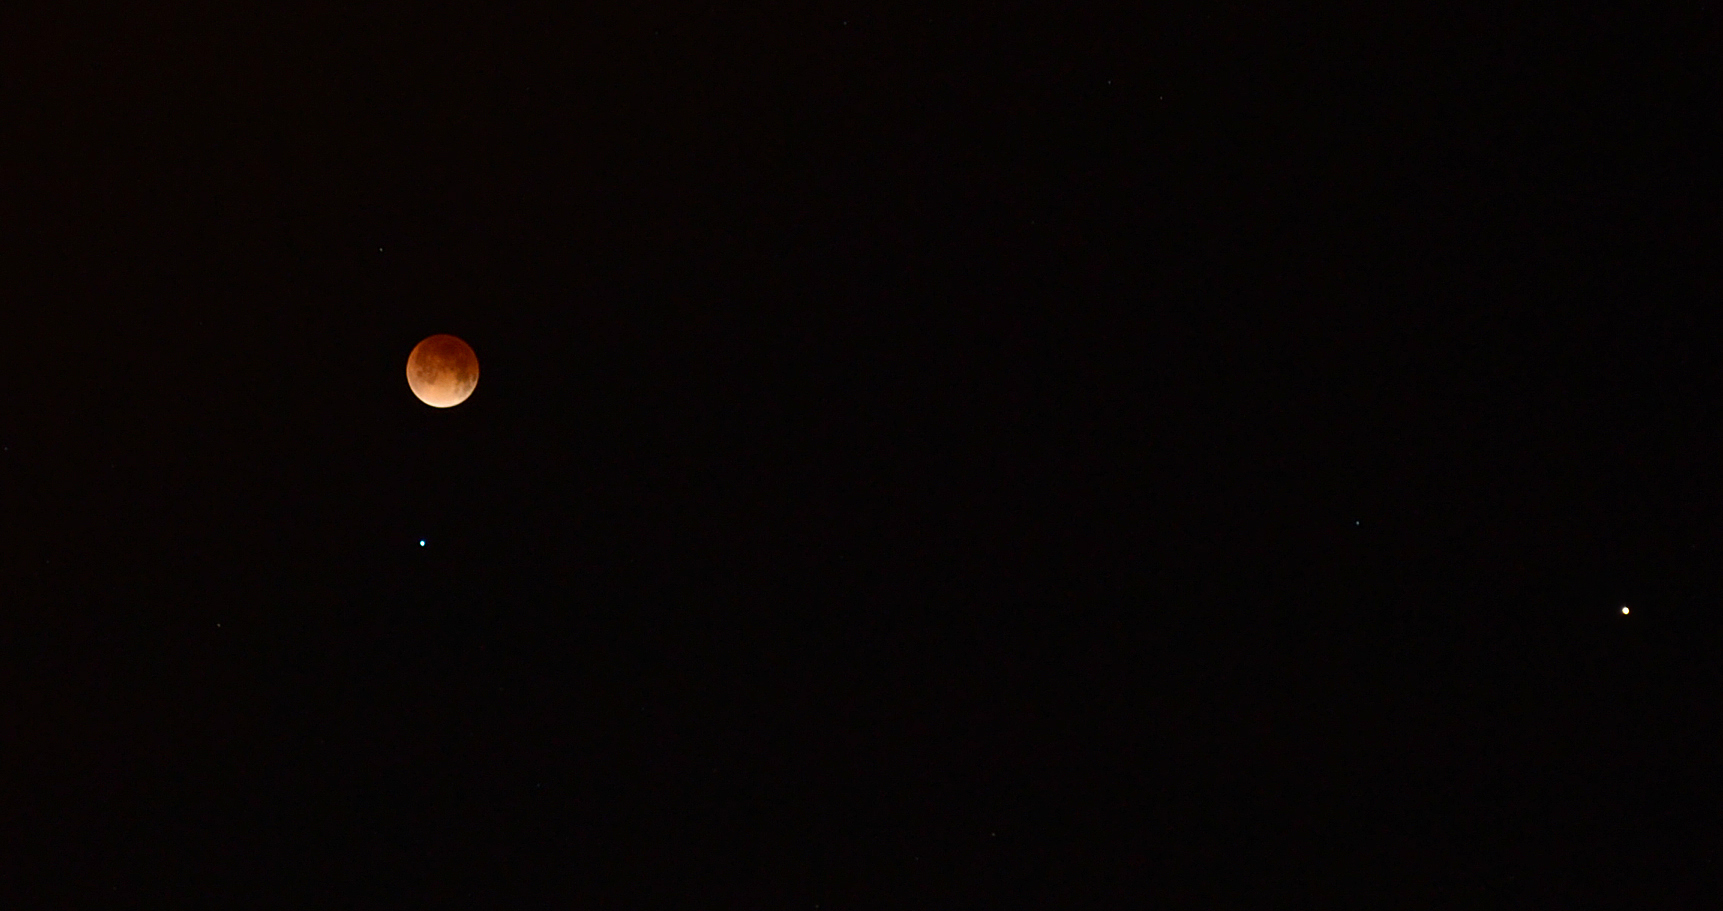 Total Lunar Eclipse, Mars and Spica: April 15, 2014